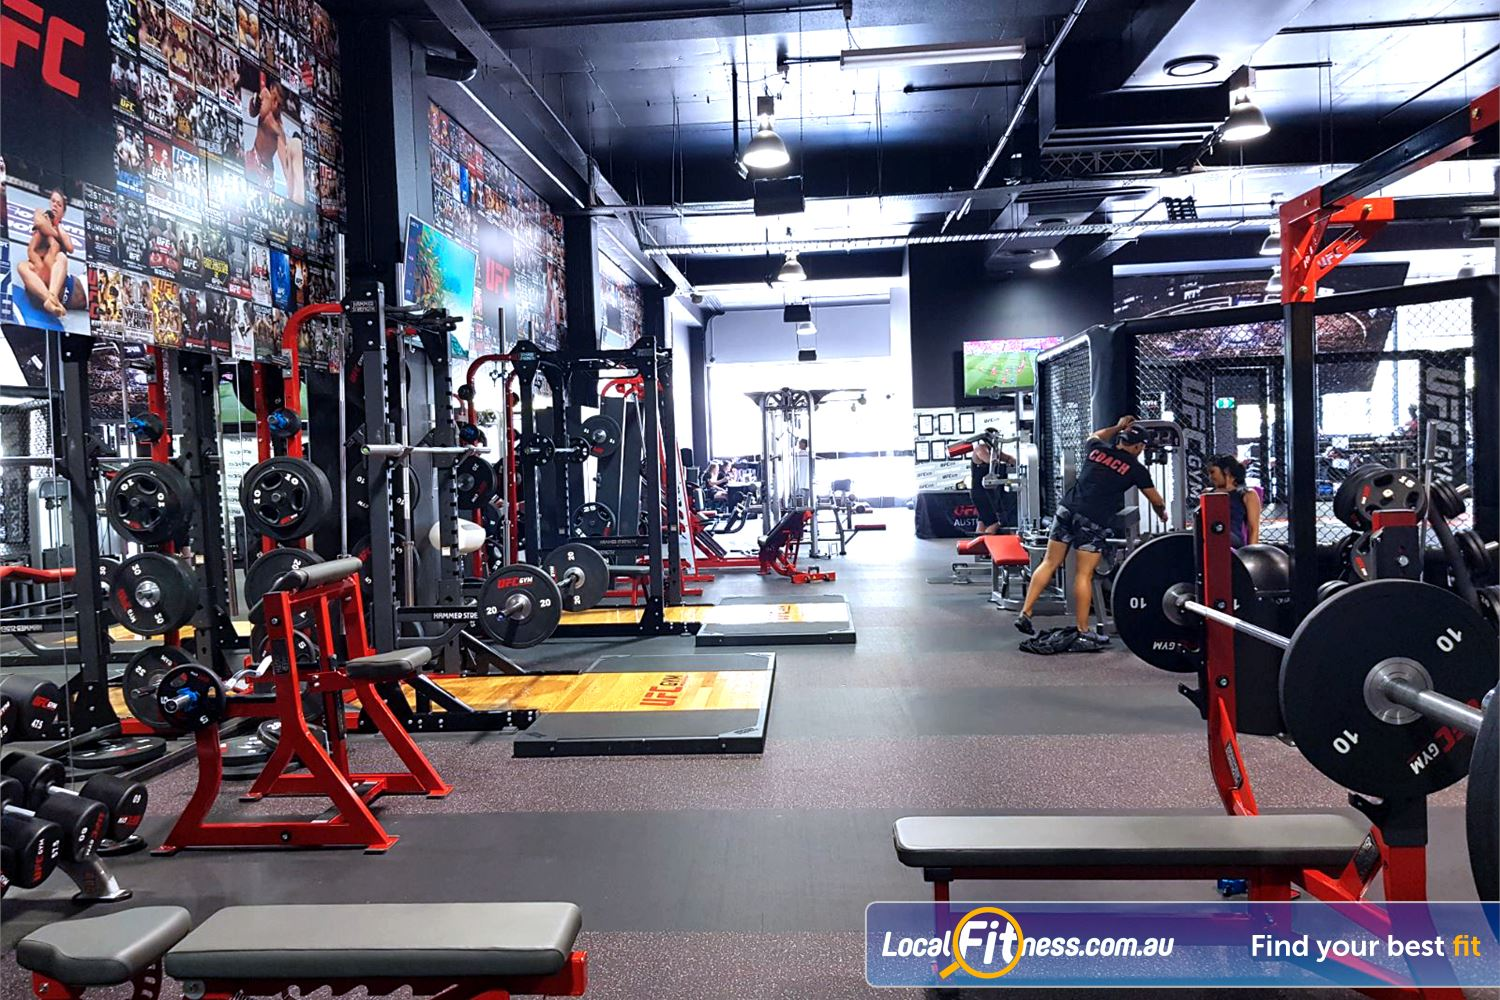 UFC Gym Blacktown Our Blacktown gym includes state of the art Life Fitness and Hammer Strength.